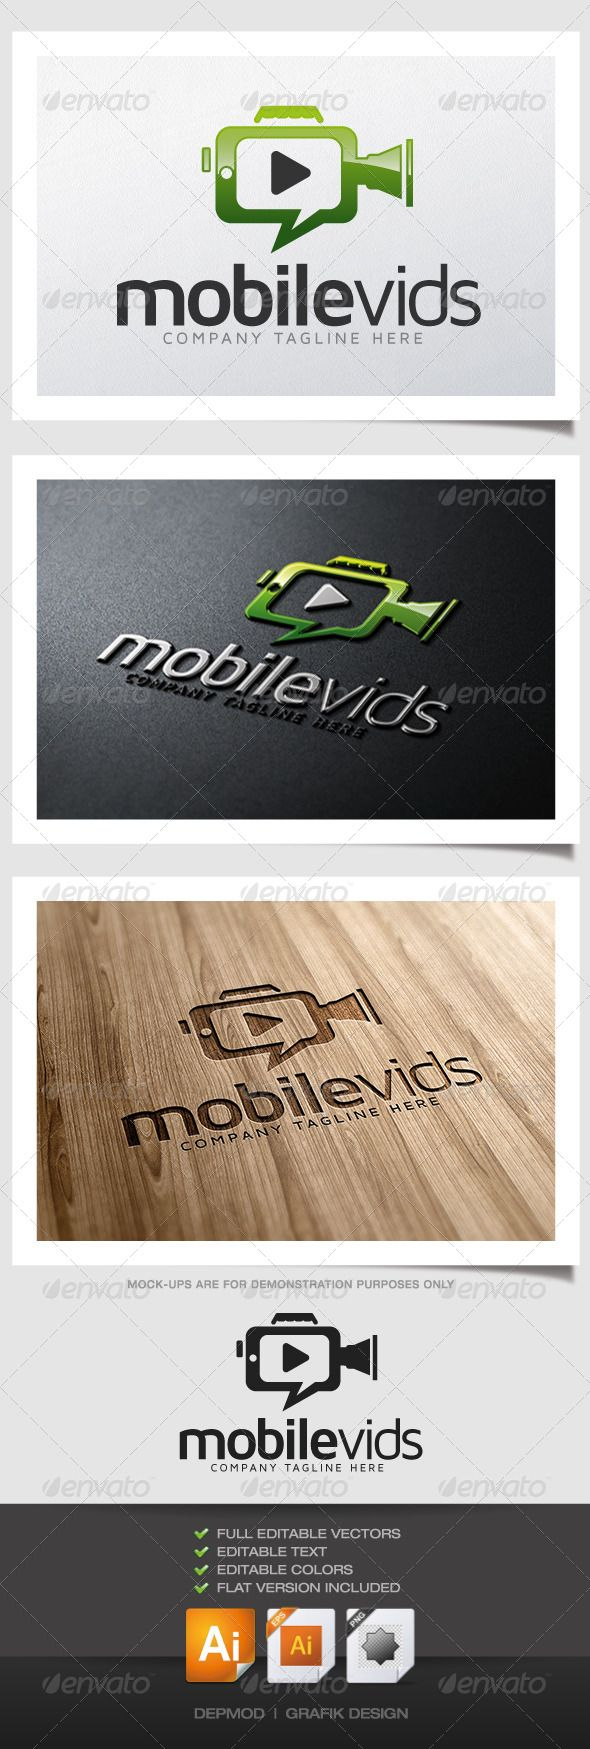 Mobile Vids - Logo Design Template Vector #logotype Download it here: http://graphicriver.net/item/mobile-vids/6183999?s_rank=687?ref=nesto